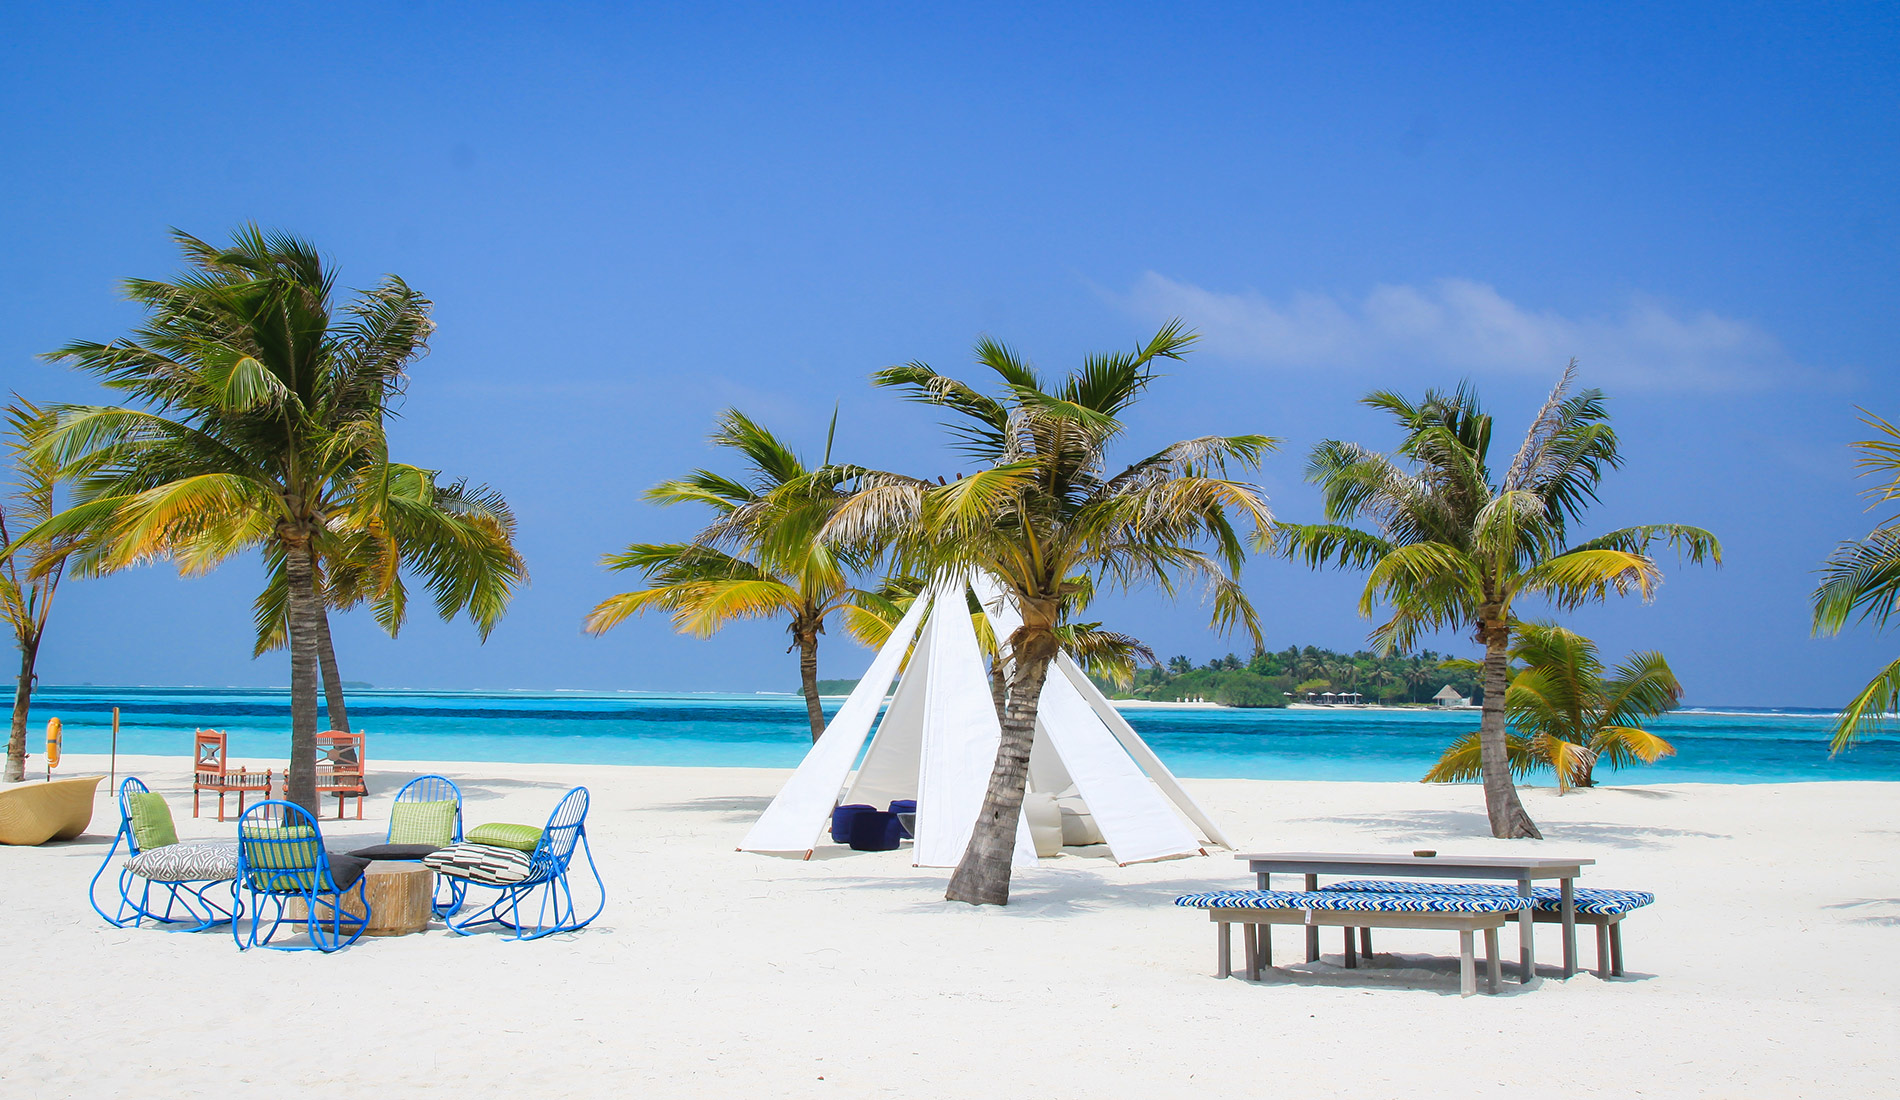 Luxury hotel Kanuhura Resort & Spa Maldives 5-star meal on the beach